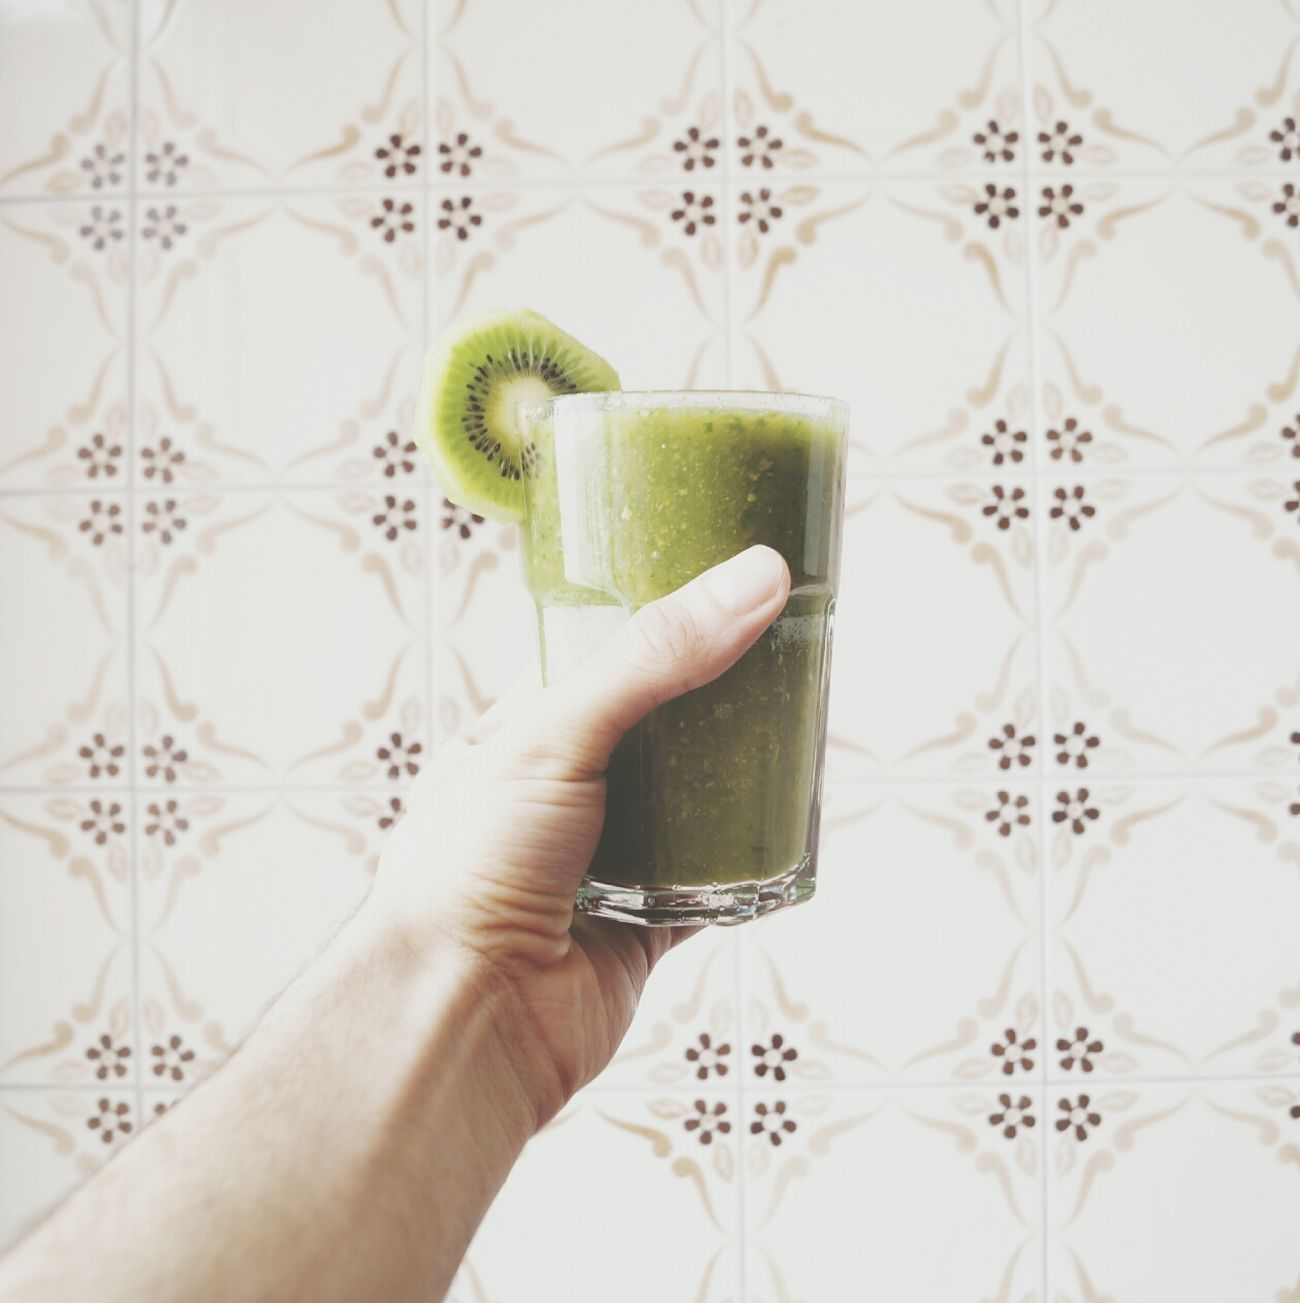 time for a Healthy life Valencia, Spain! Green Juice Lifestyle